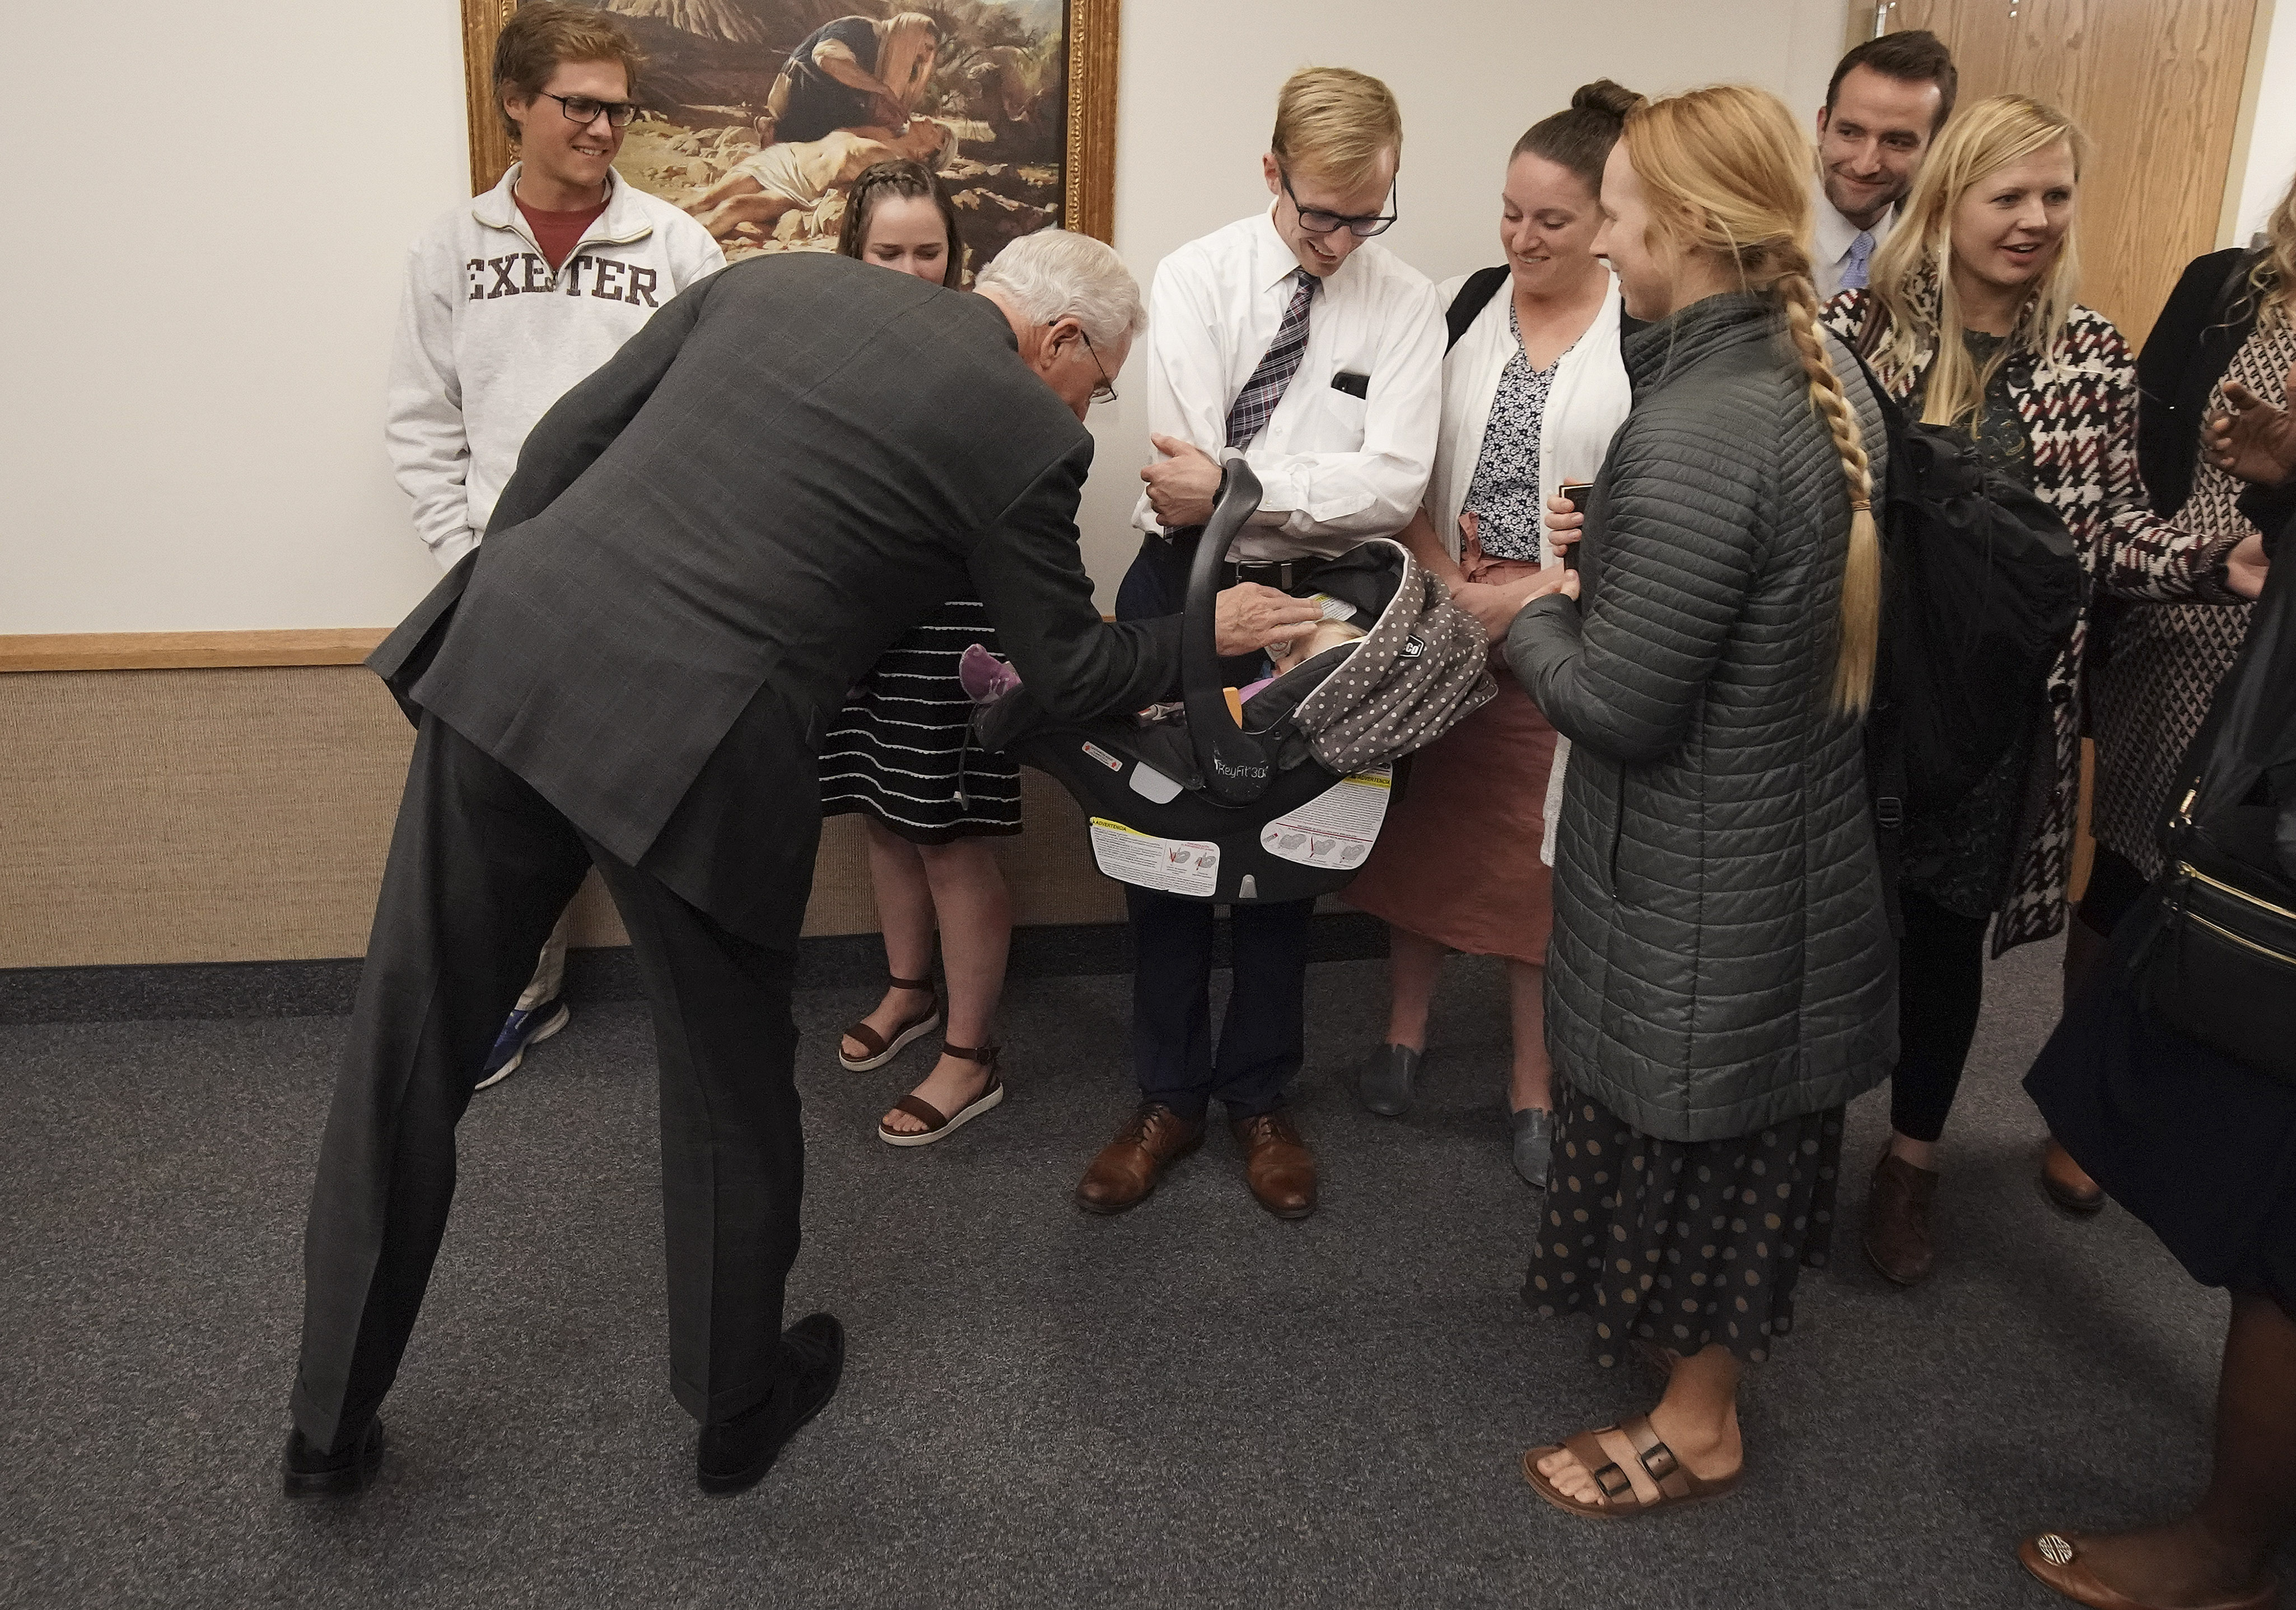 Elder D. Todd Christofferson, of The Church of Jesus Christ of Latter-day Saints' Quorum of the Twelve Apostles, visits 11-month-old Millie Morey and parents Zack and Hailey after a fireside in Boston on Saturday, Oct. 19, 2019.